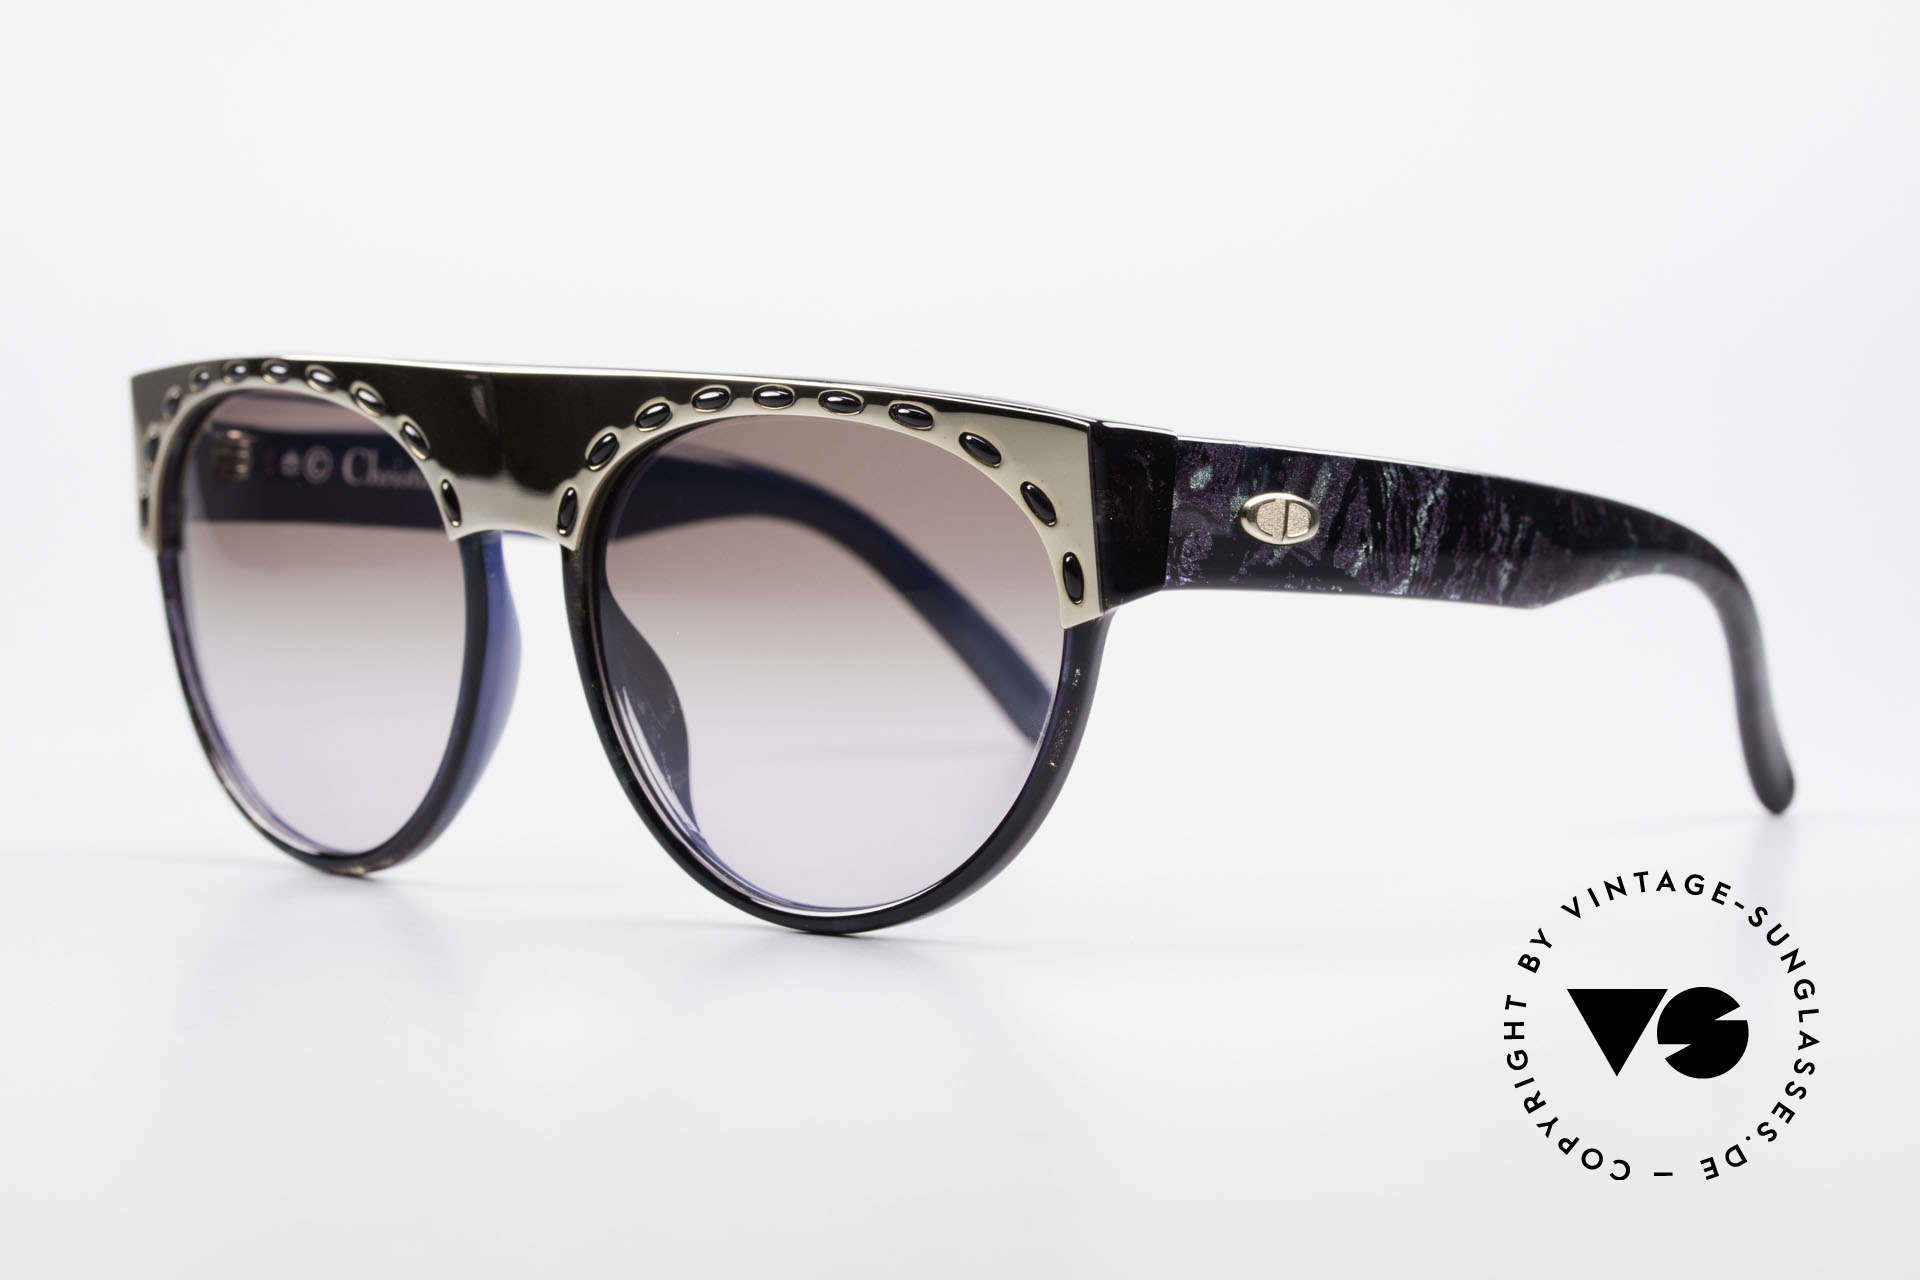 Christian Dior 2437 Vintage Ladies Sunglasses 80's, frame shines marble blue & completely blue on the back, Made for Women